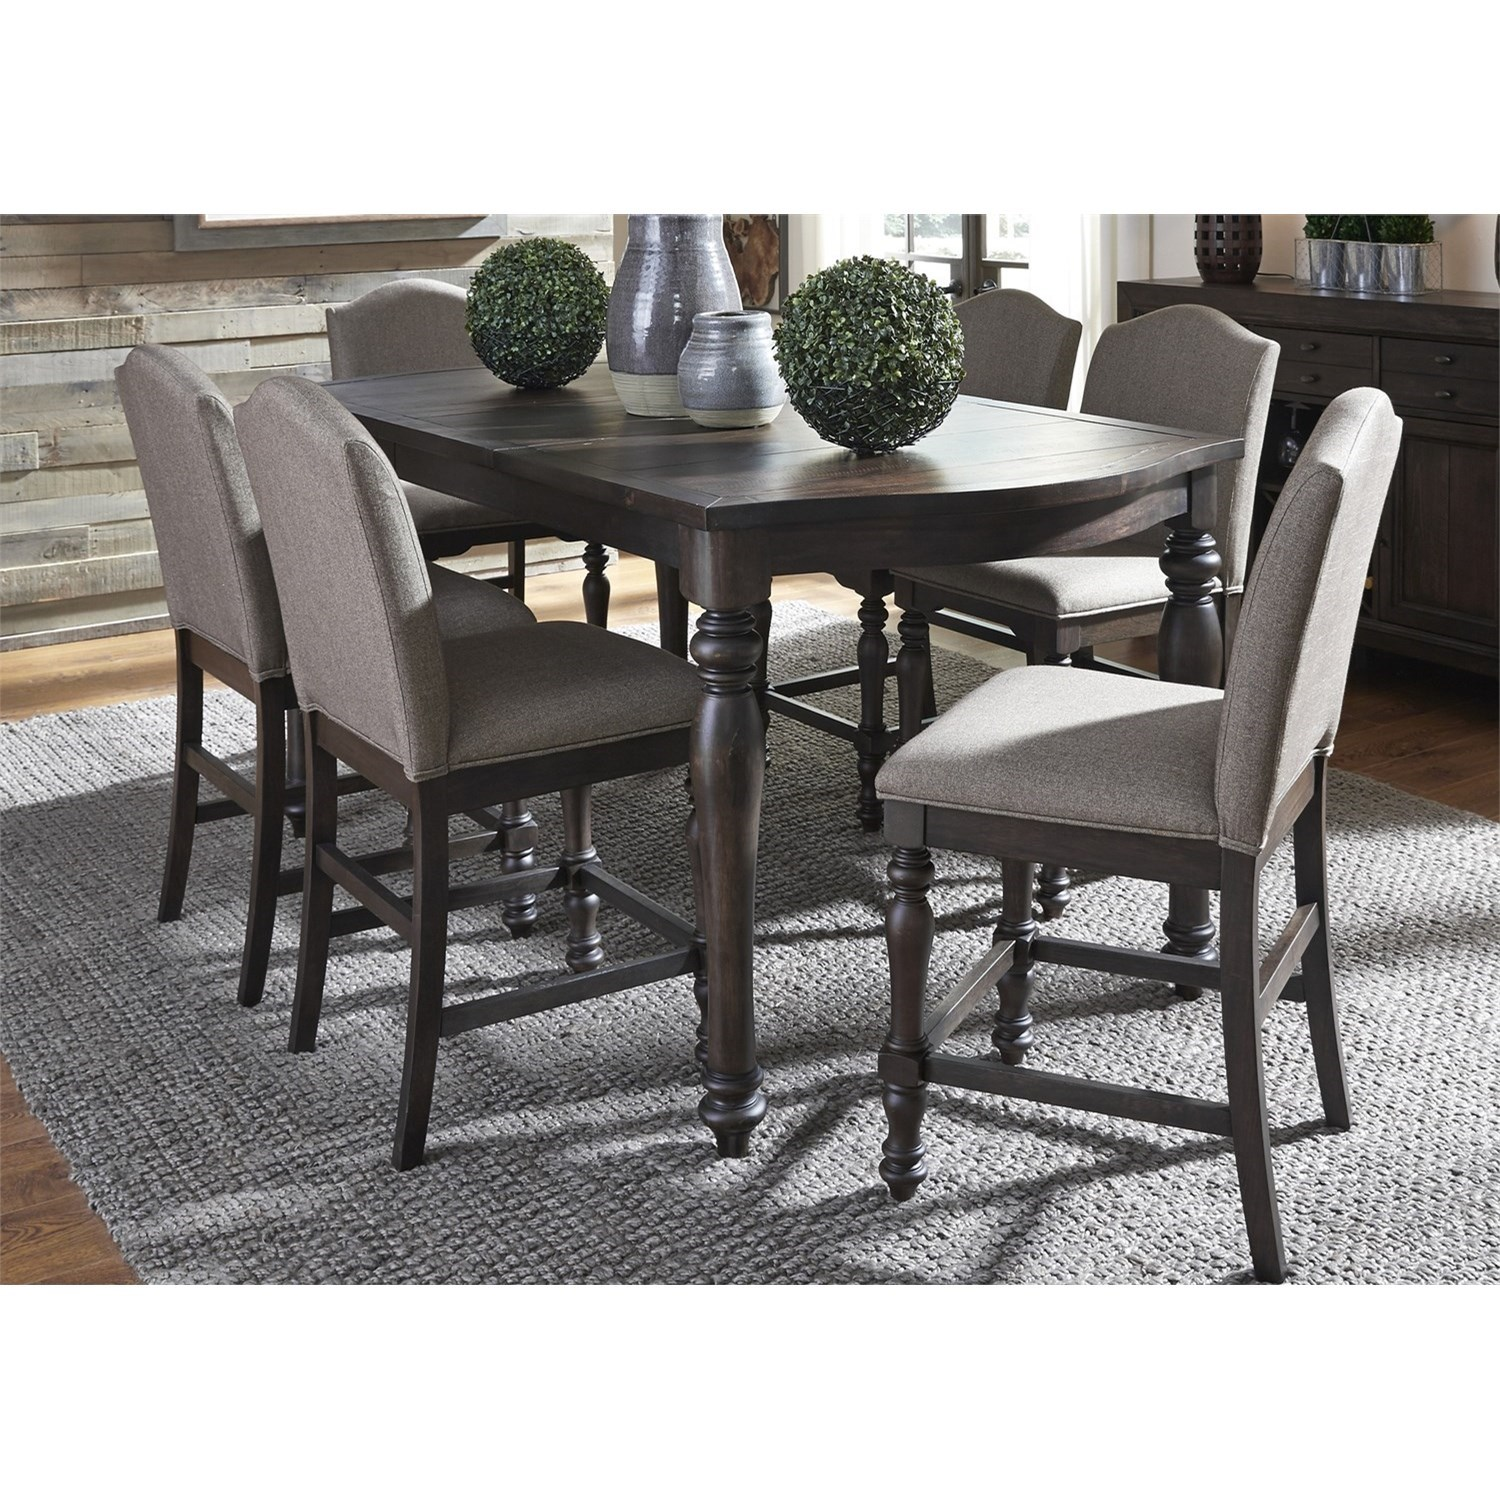 Liberty Furniture Catawba Hills Dining 7 Piece Gathering Table Set  - Item Number: 816-DR-7GTS